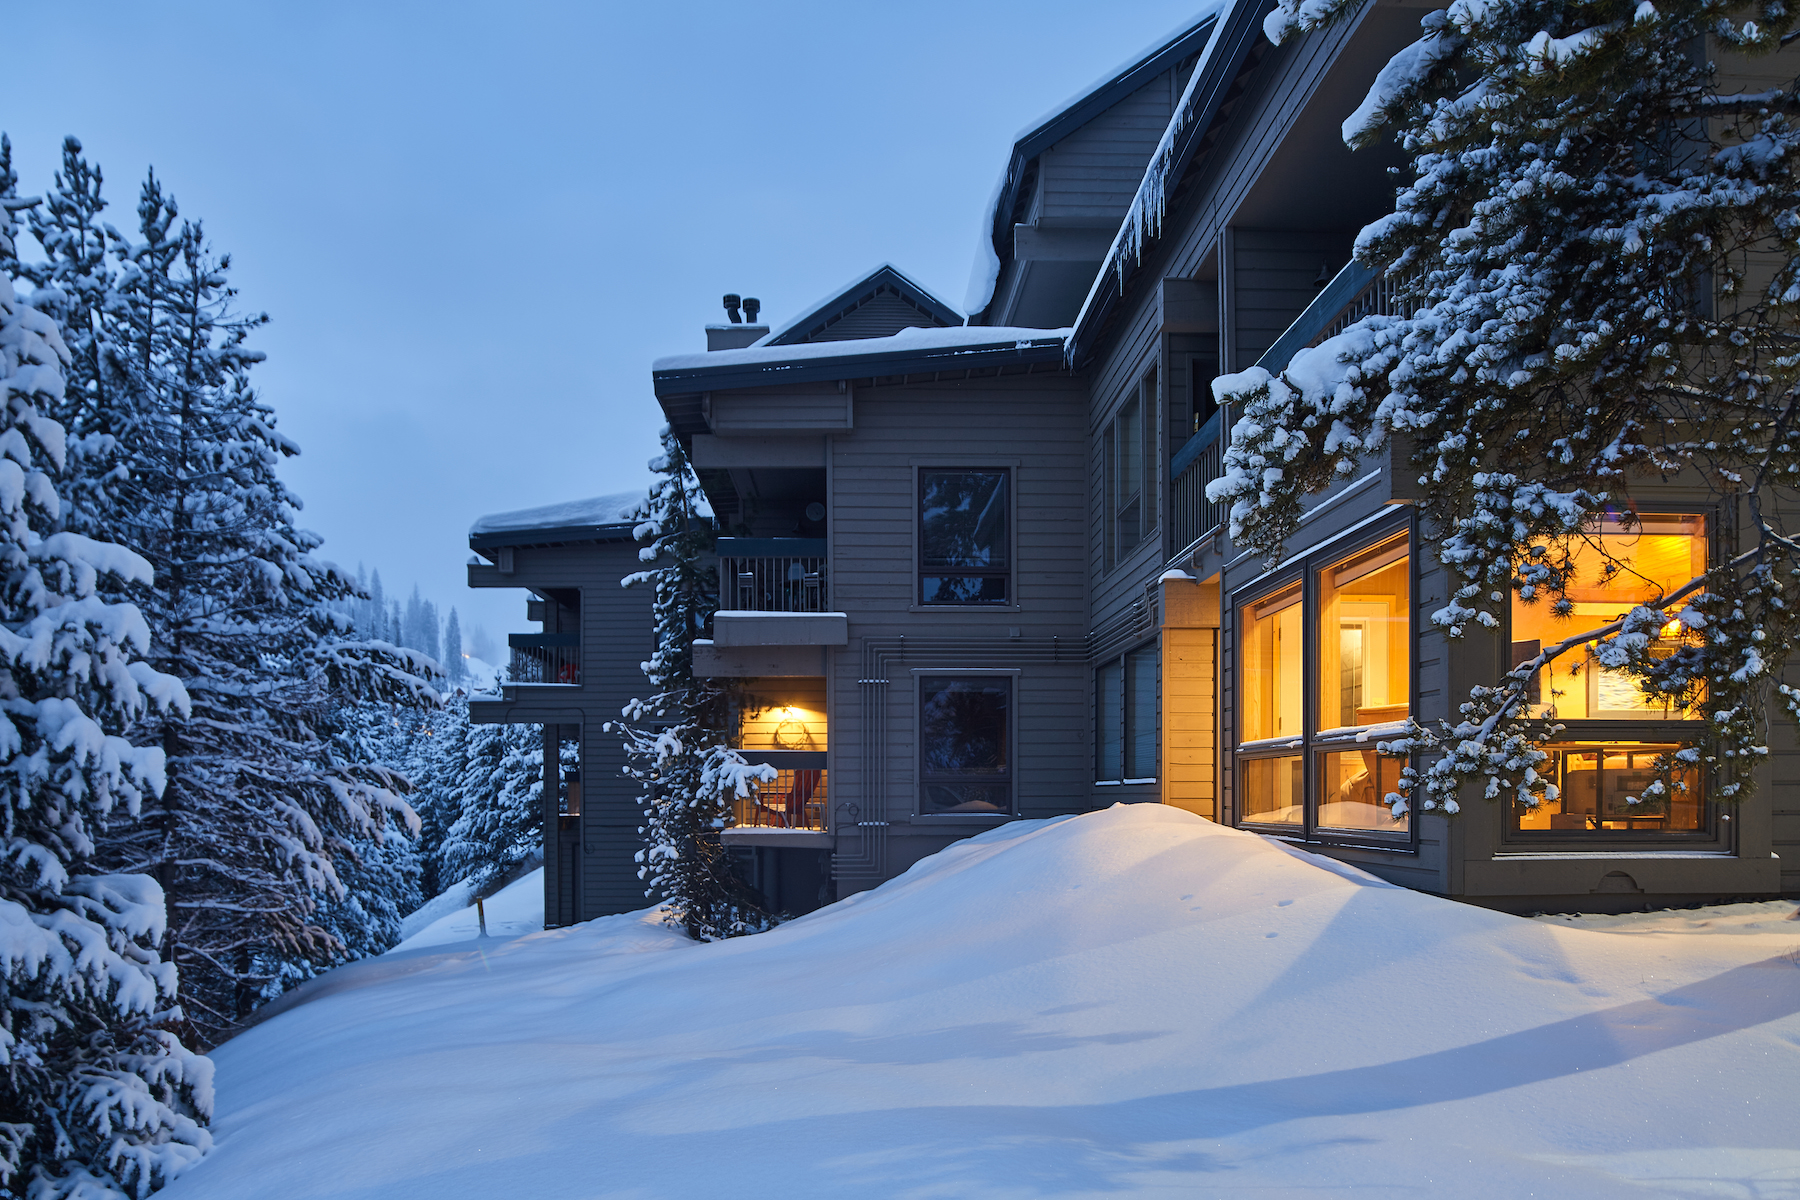 Property For Sale at Great Ski Getaway